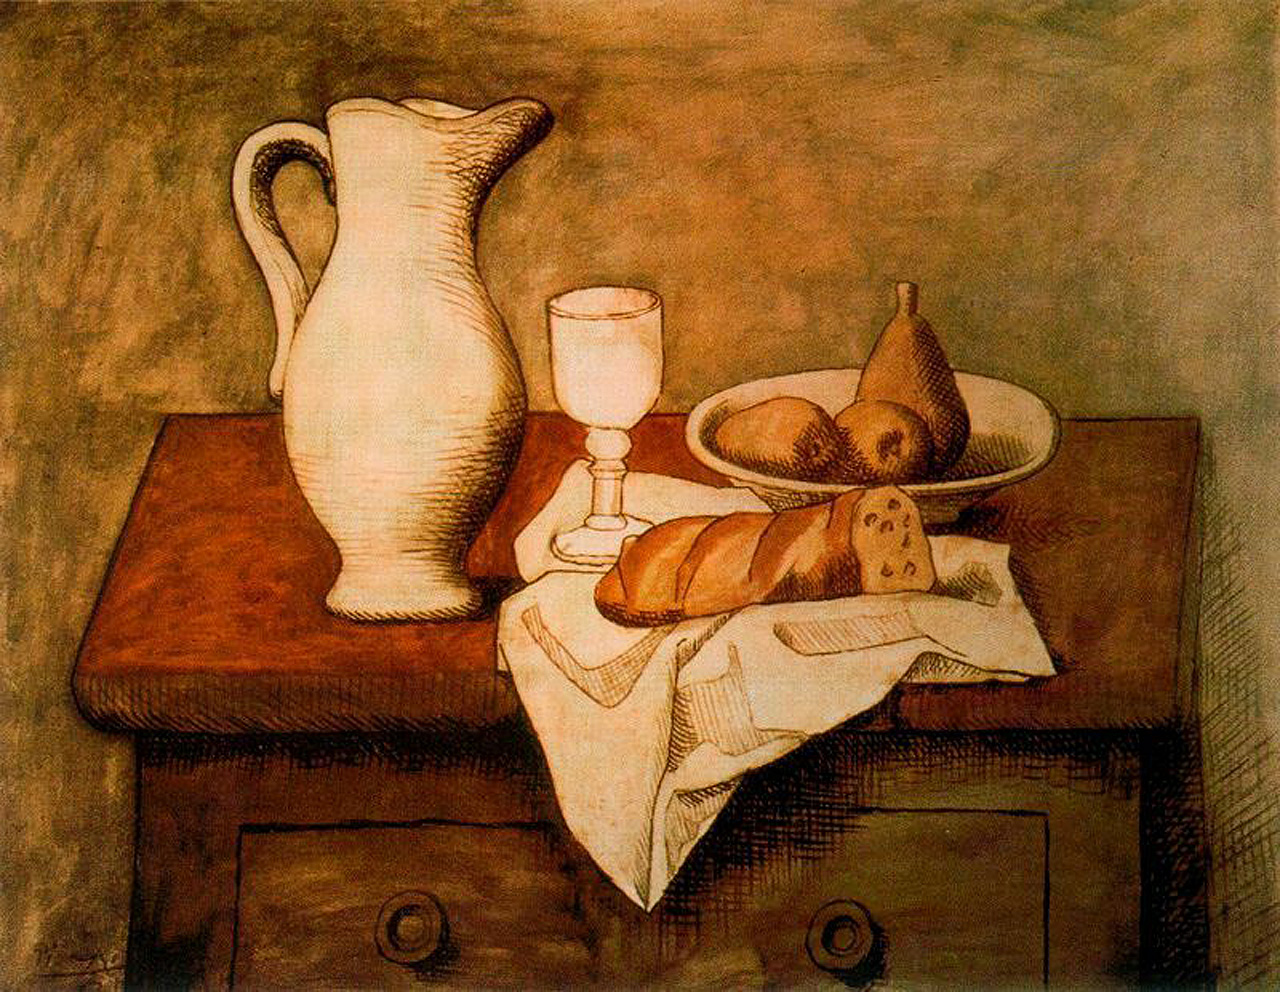 Drawn still life picasso Life reproduction painting life Still